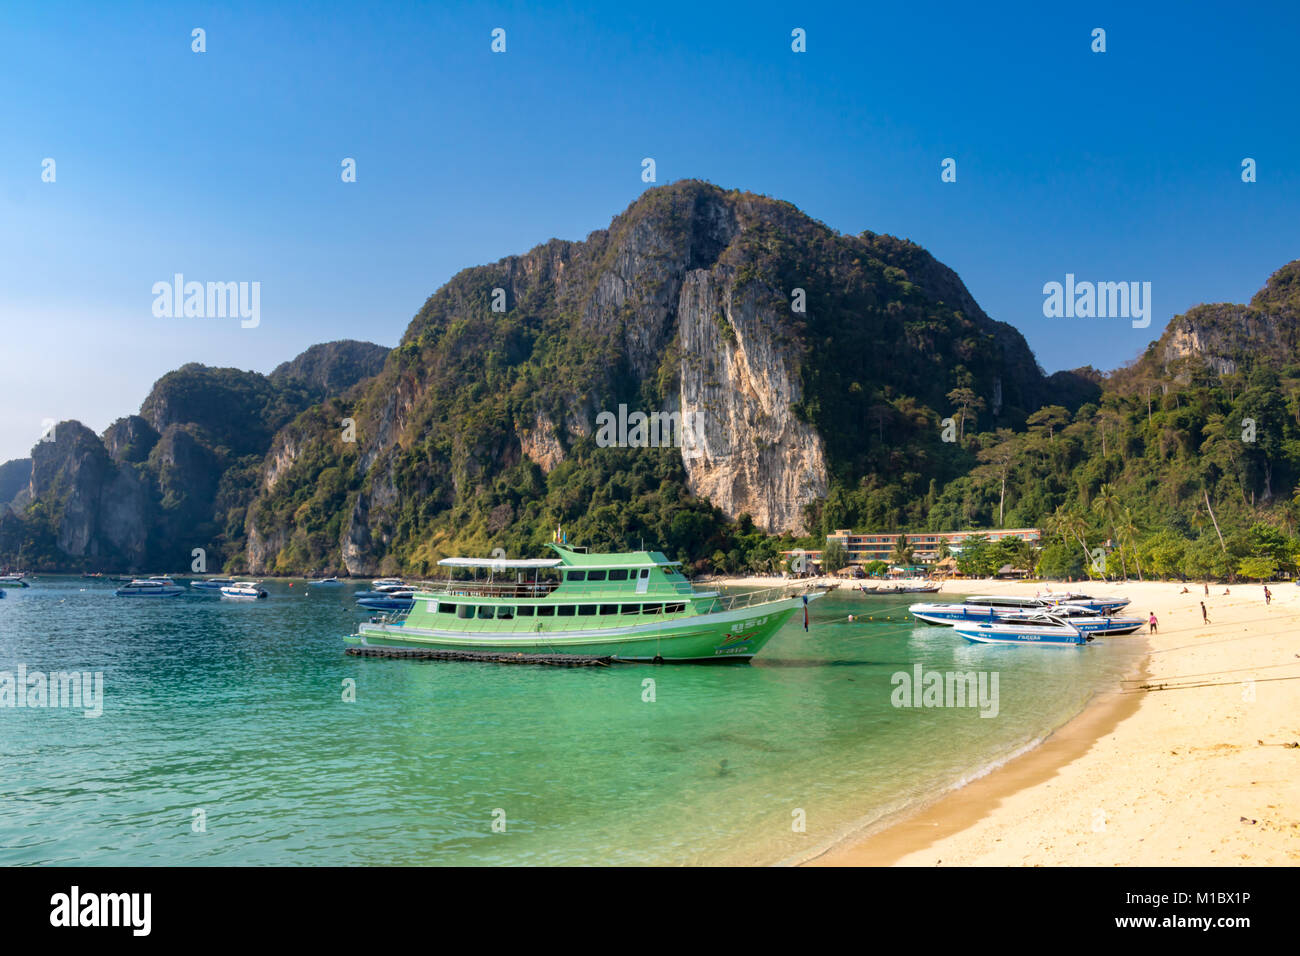 Phi Phi Island Krabi Thailand January 31, 2016 Speedboats moored at a beach in Ao Tonsai, on Koh Phi Phi Don. - Stock Image